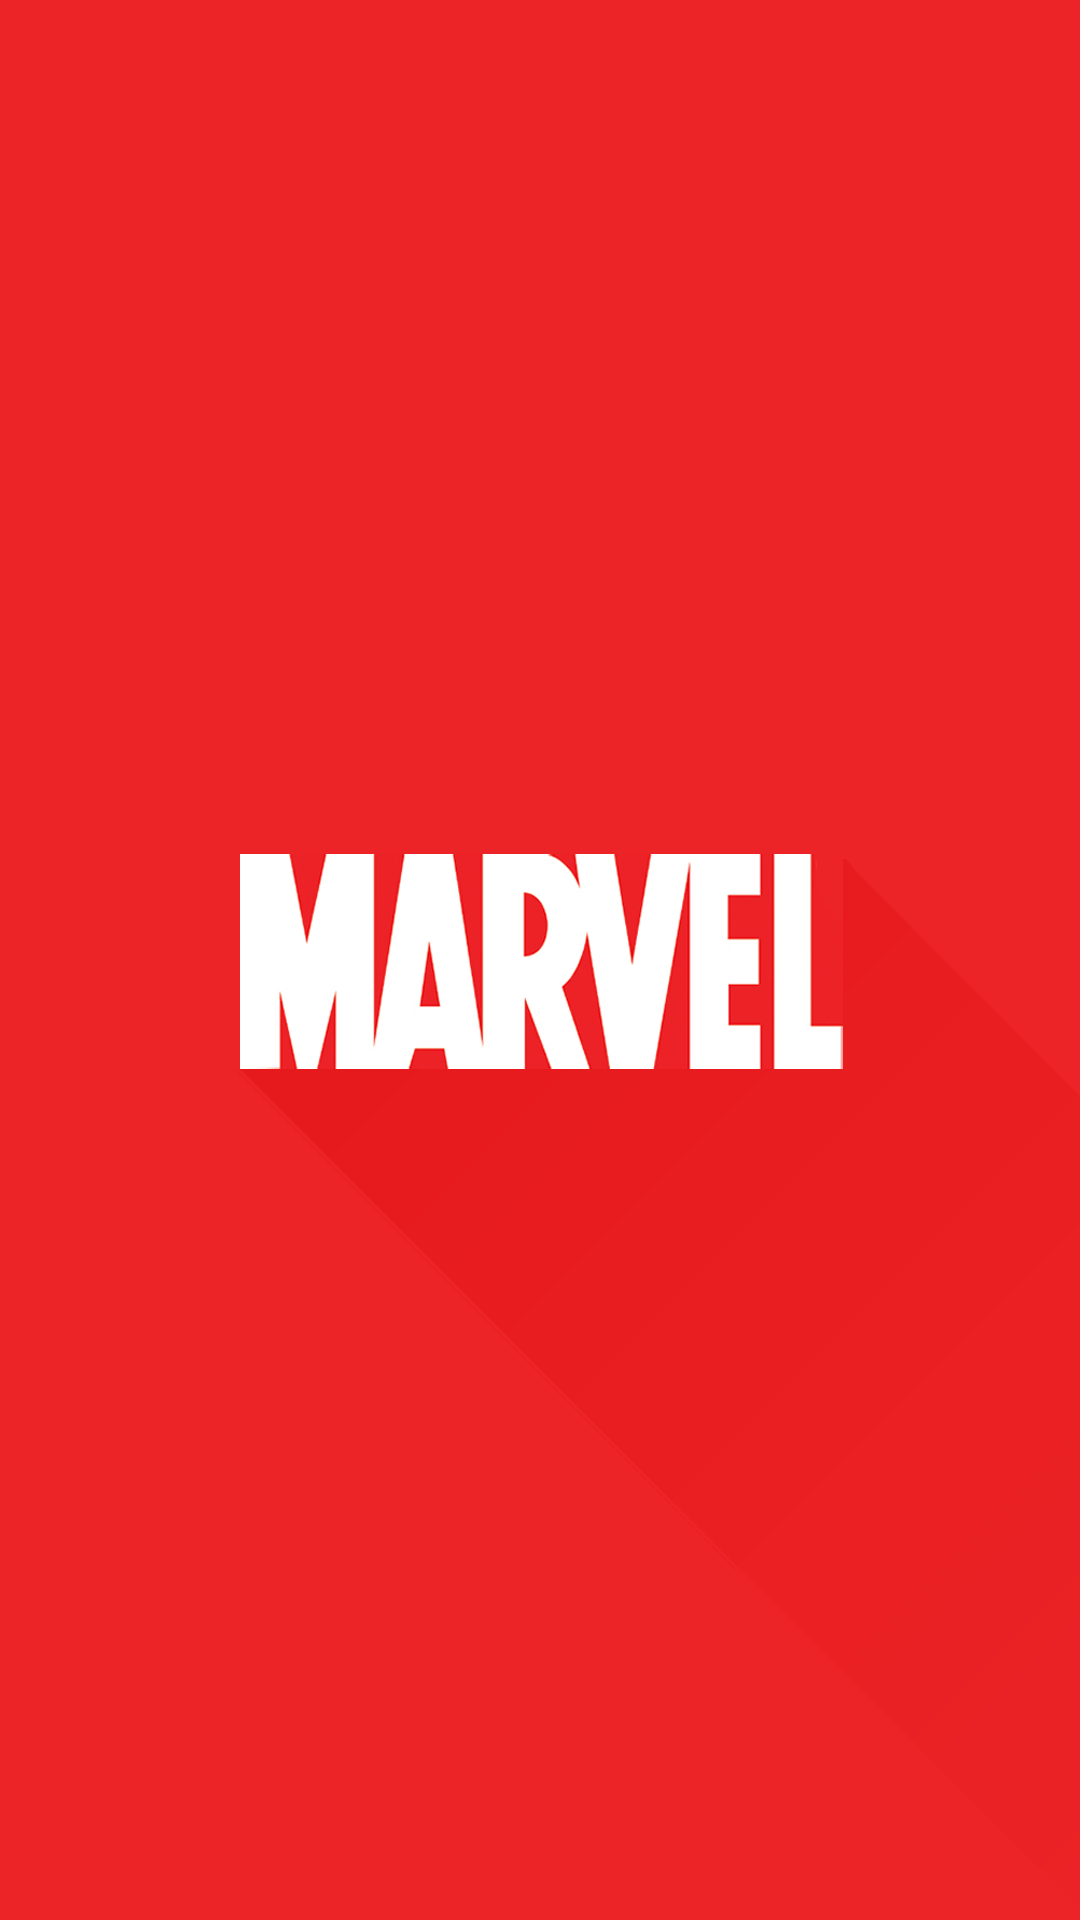 Marvel Wallpapers Iphone Background Hupages Download Iphone